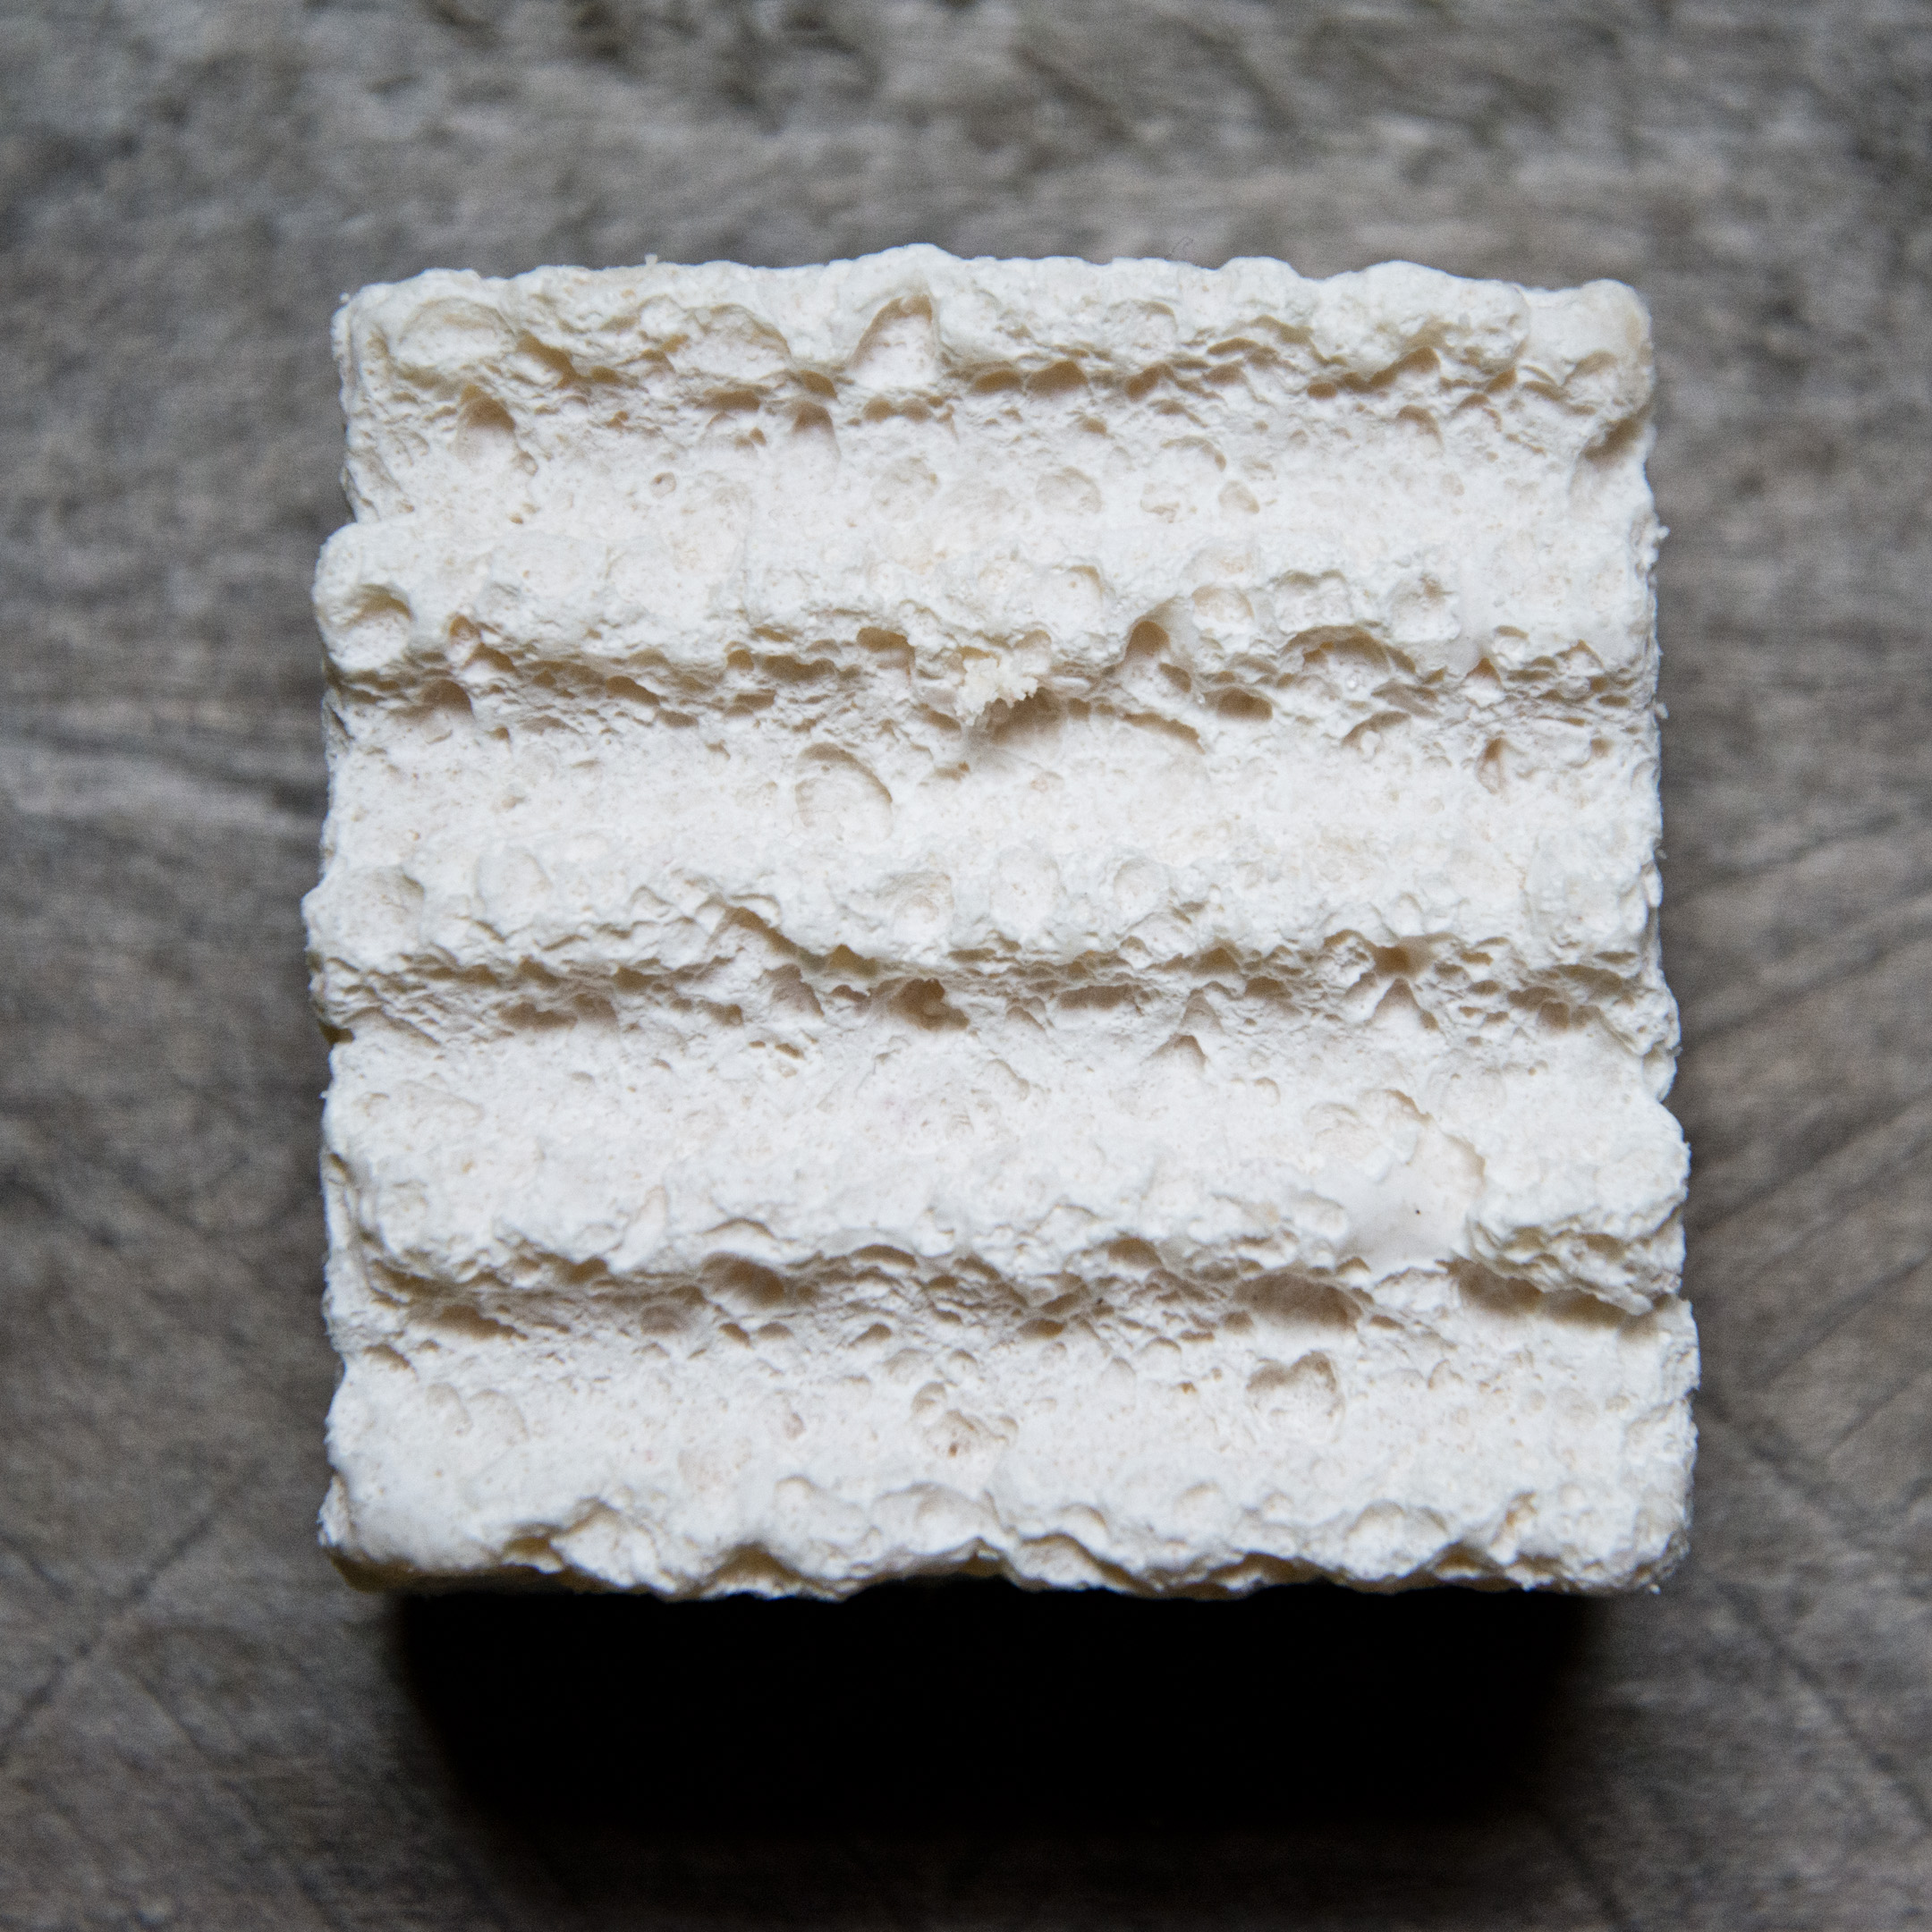 Stone Mold from The Freckled Farm Soap Company